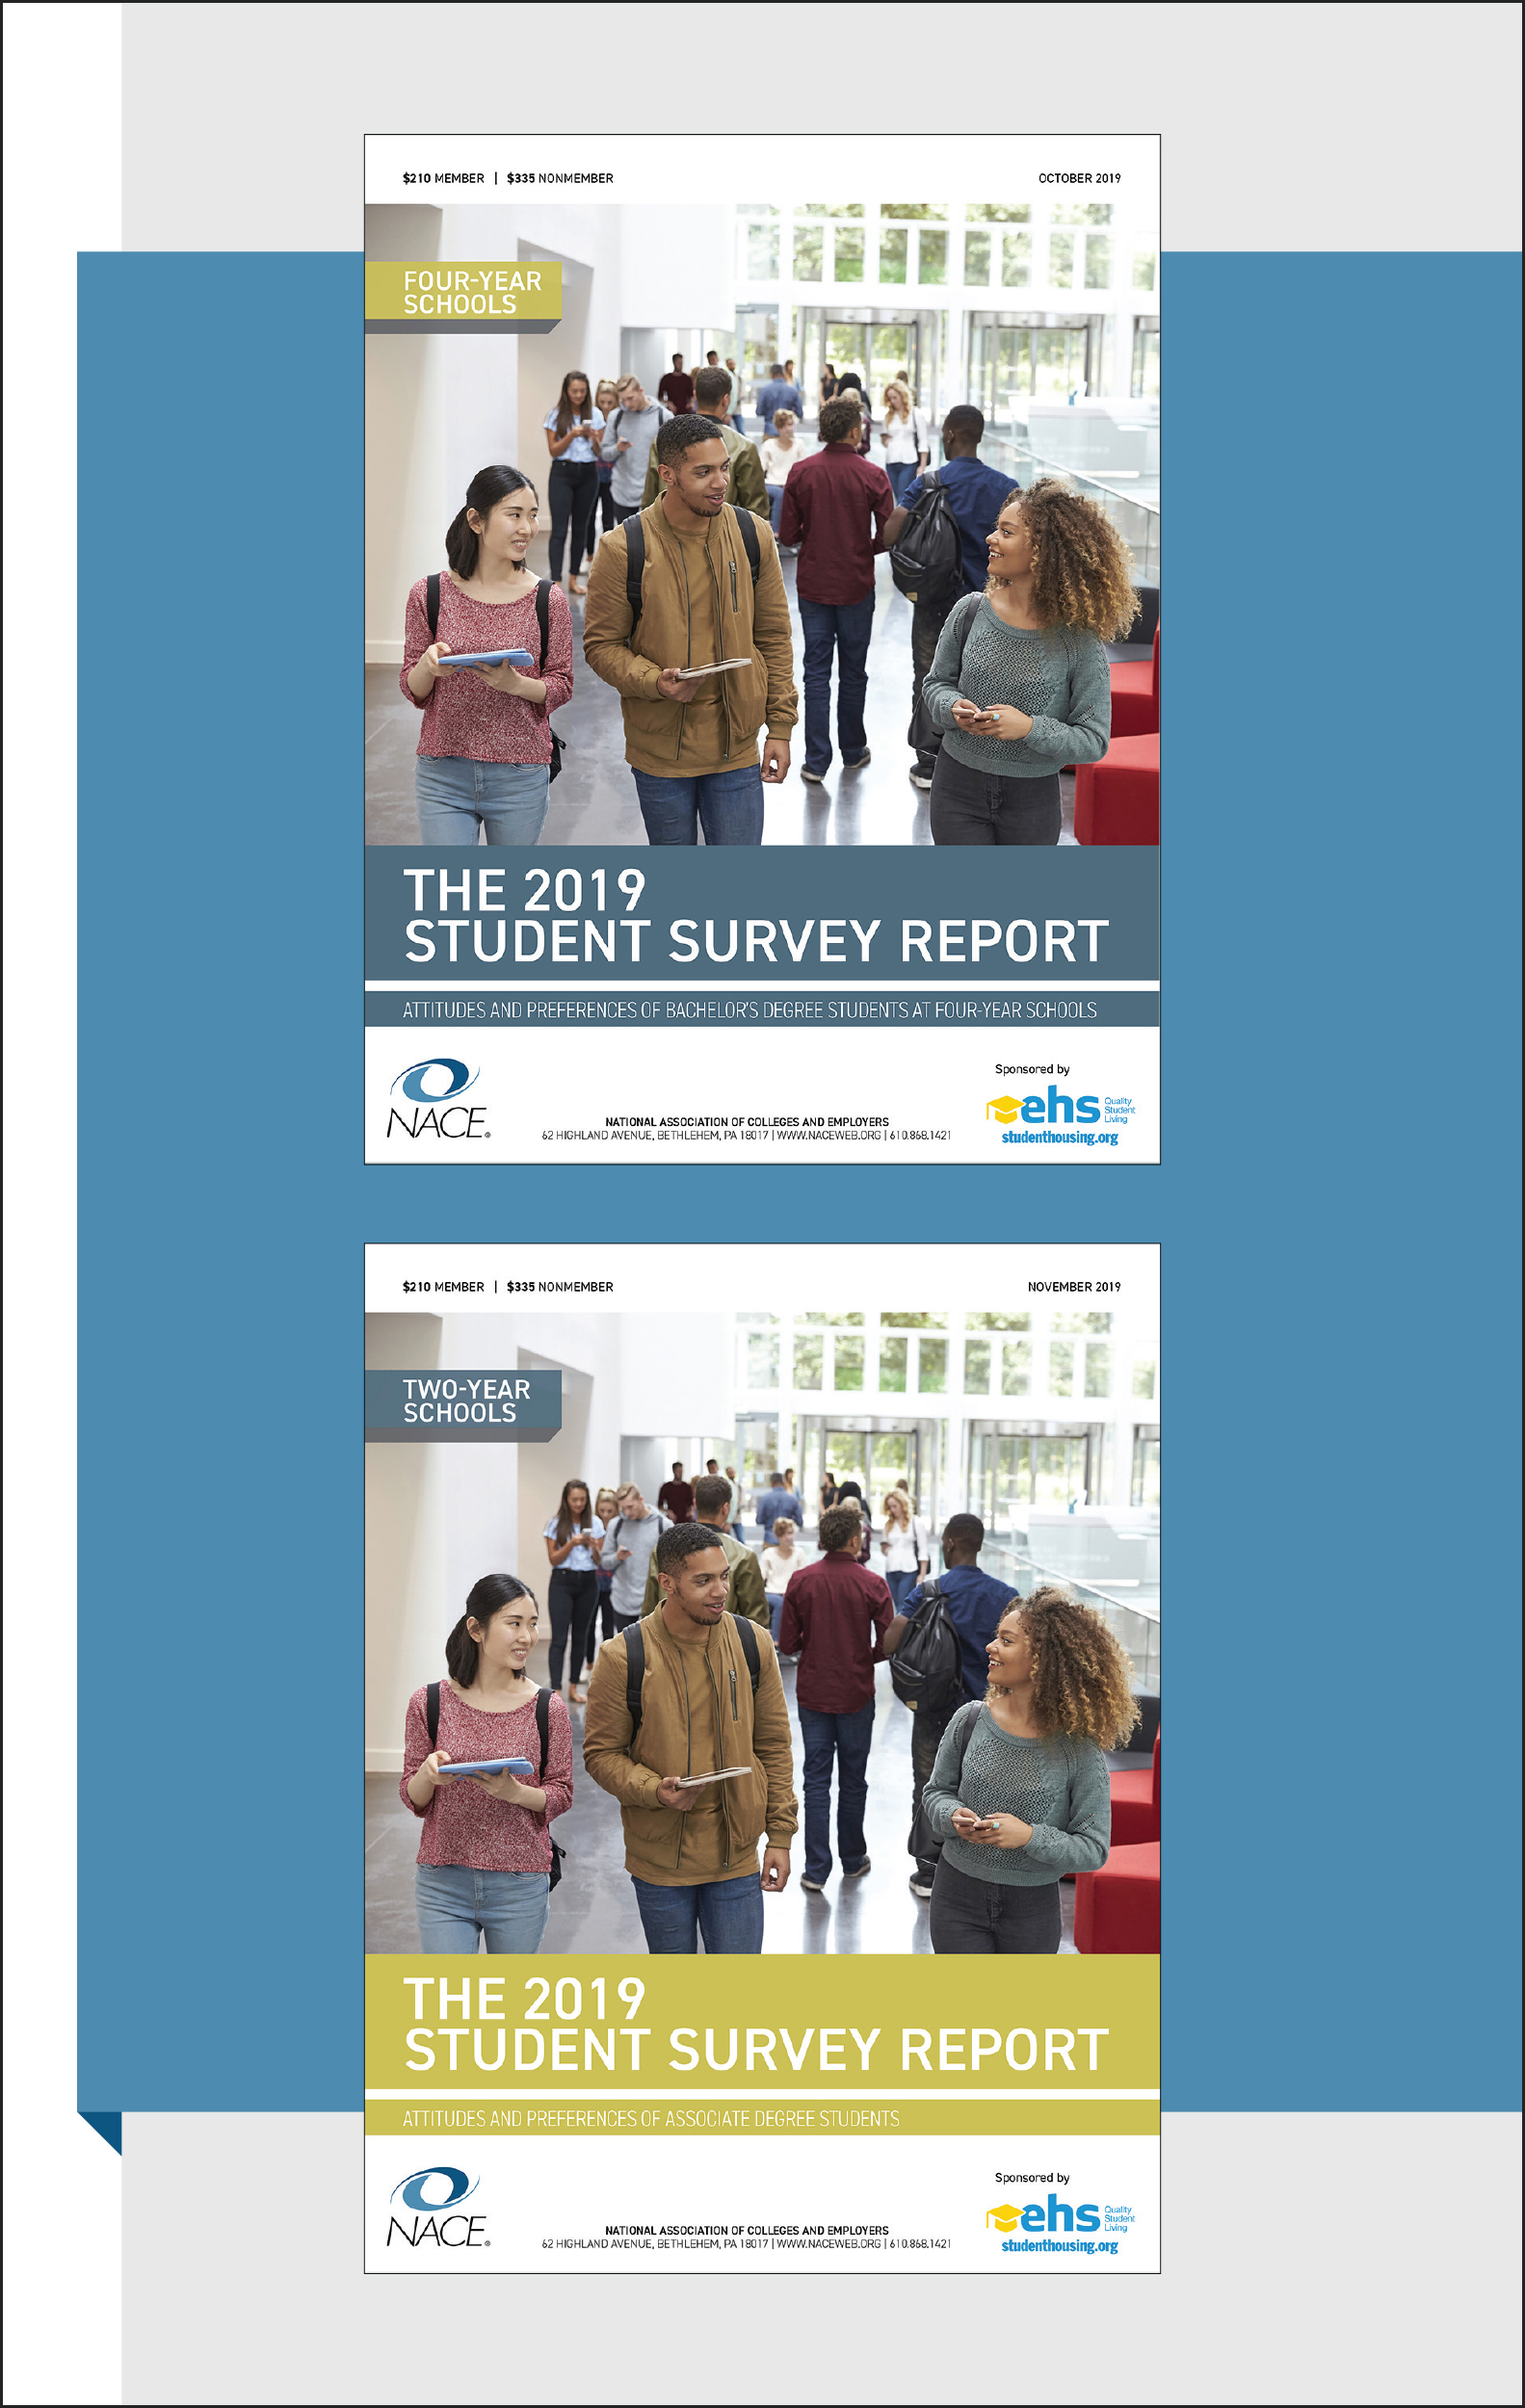 The cover of the 2019 NACE Student Survey for Four Year and Two Year Schools